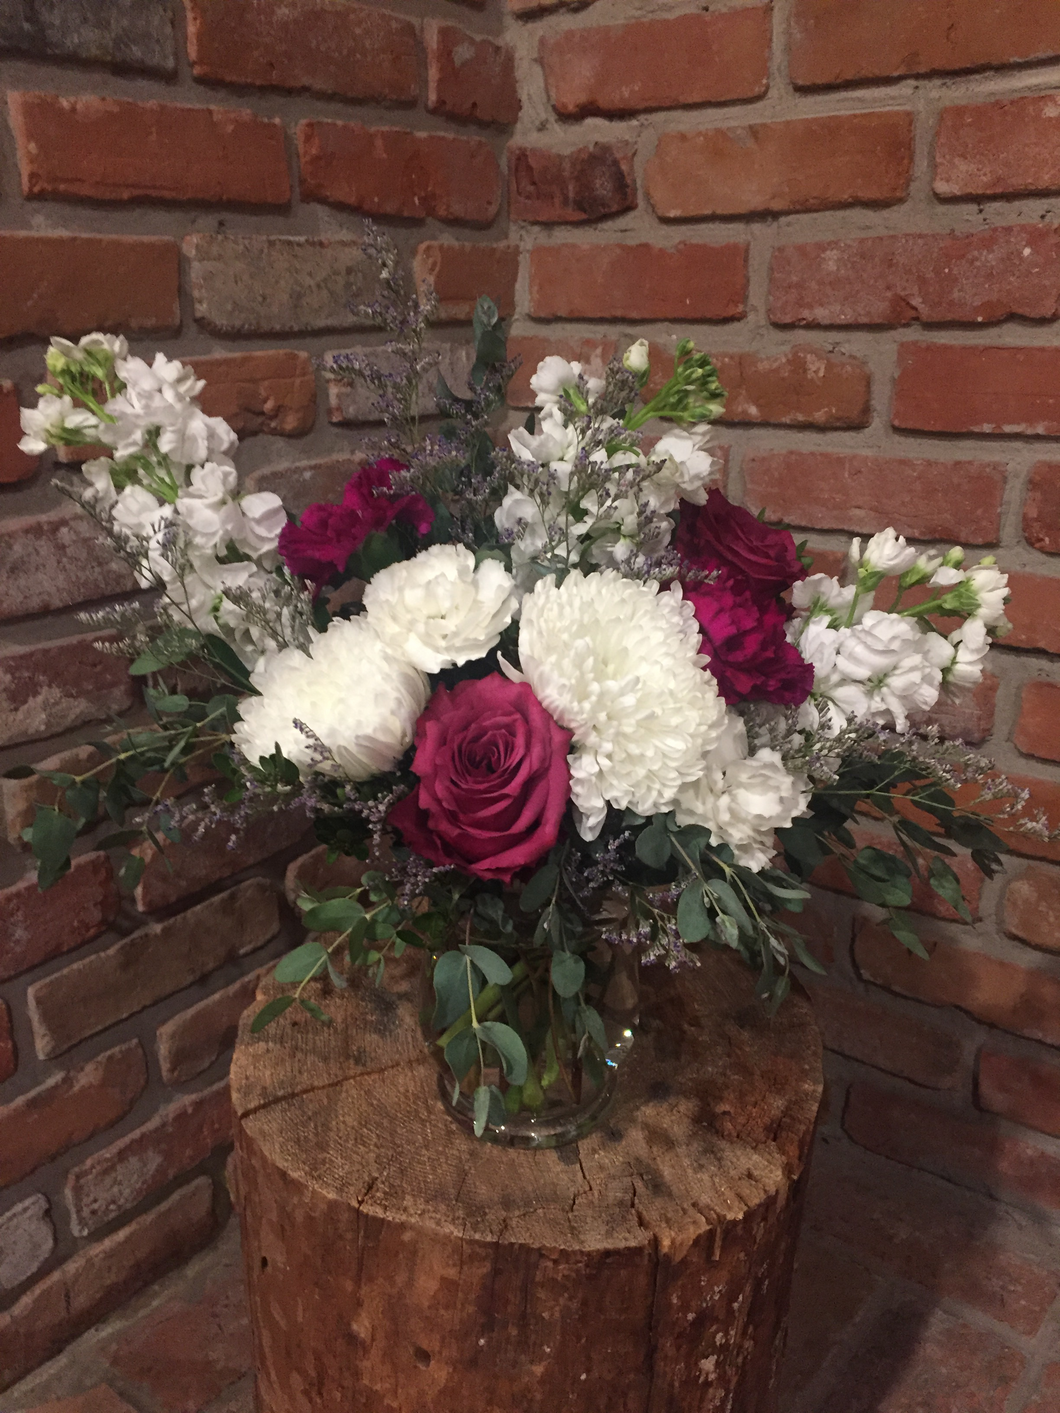 A beautiful garden style vase arrangement including a jumbo white hydrangea, fragrant white stocks, blueberry roses and plum and white carnations. A touch of whispy lavender limonium and an assortment of foliages add loads of texture!